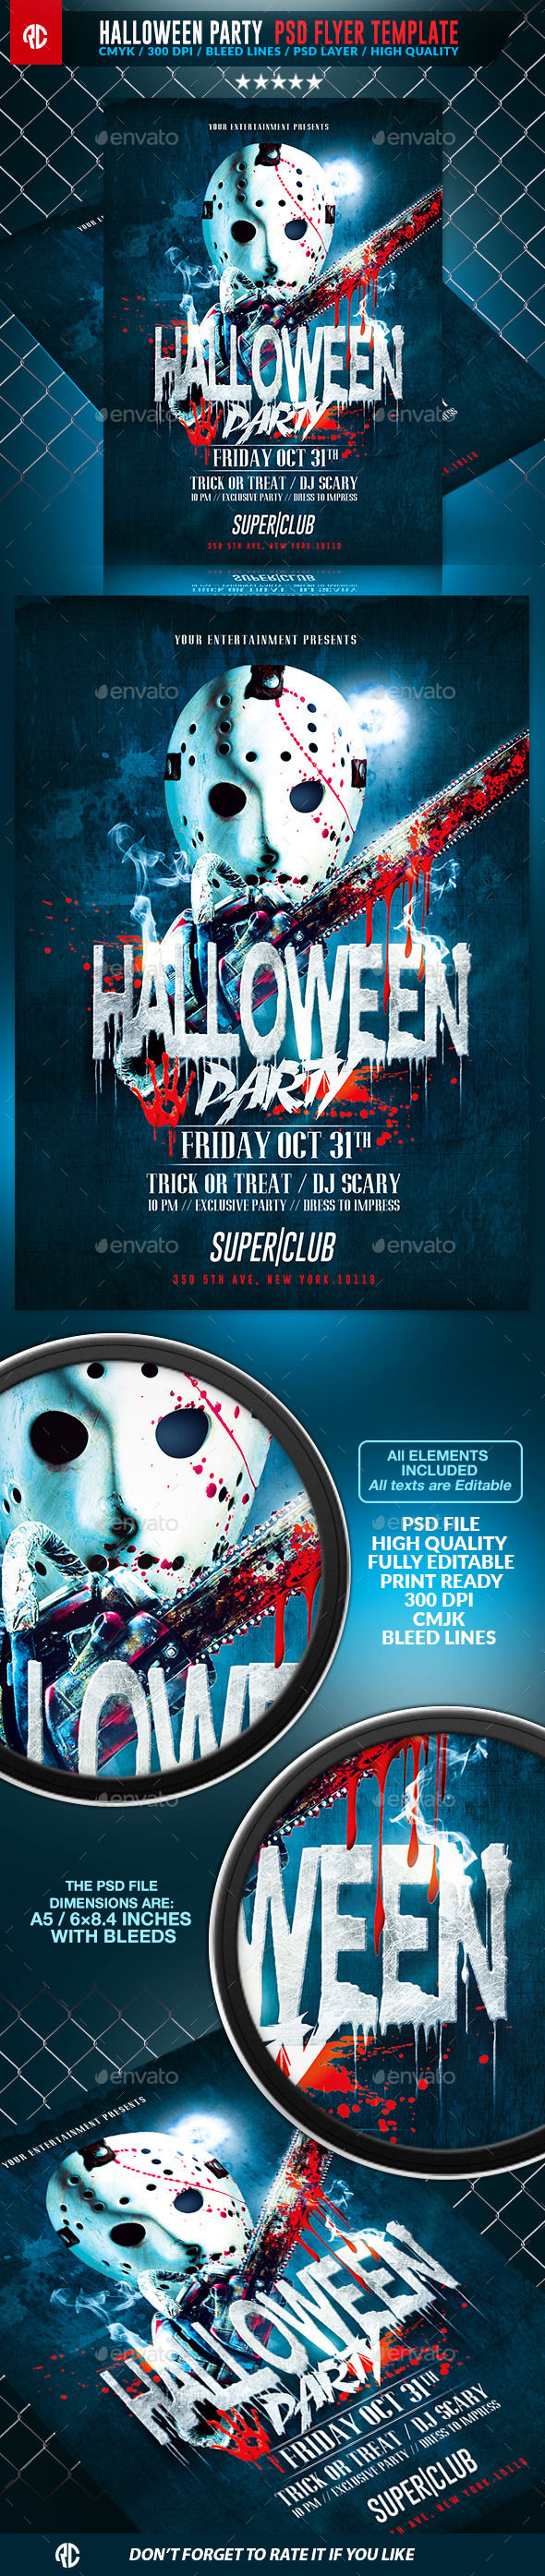 Halloween Scary Party by RomeCreation (Halloween party flyer)